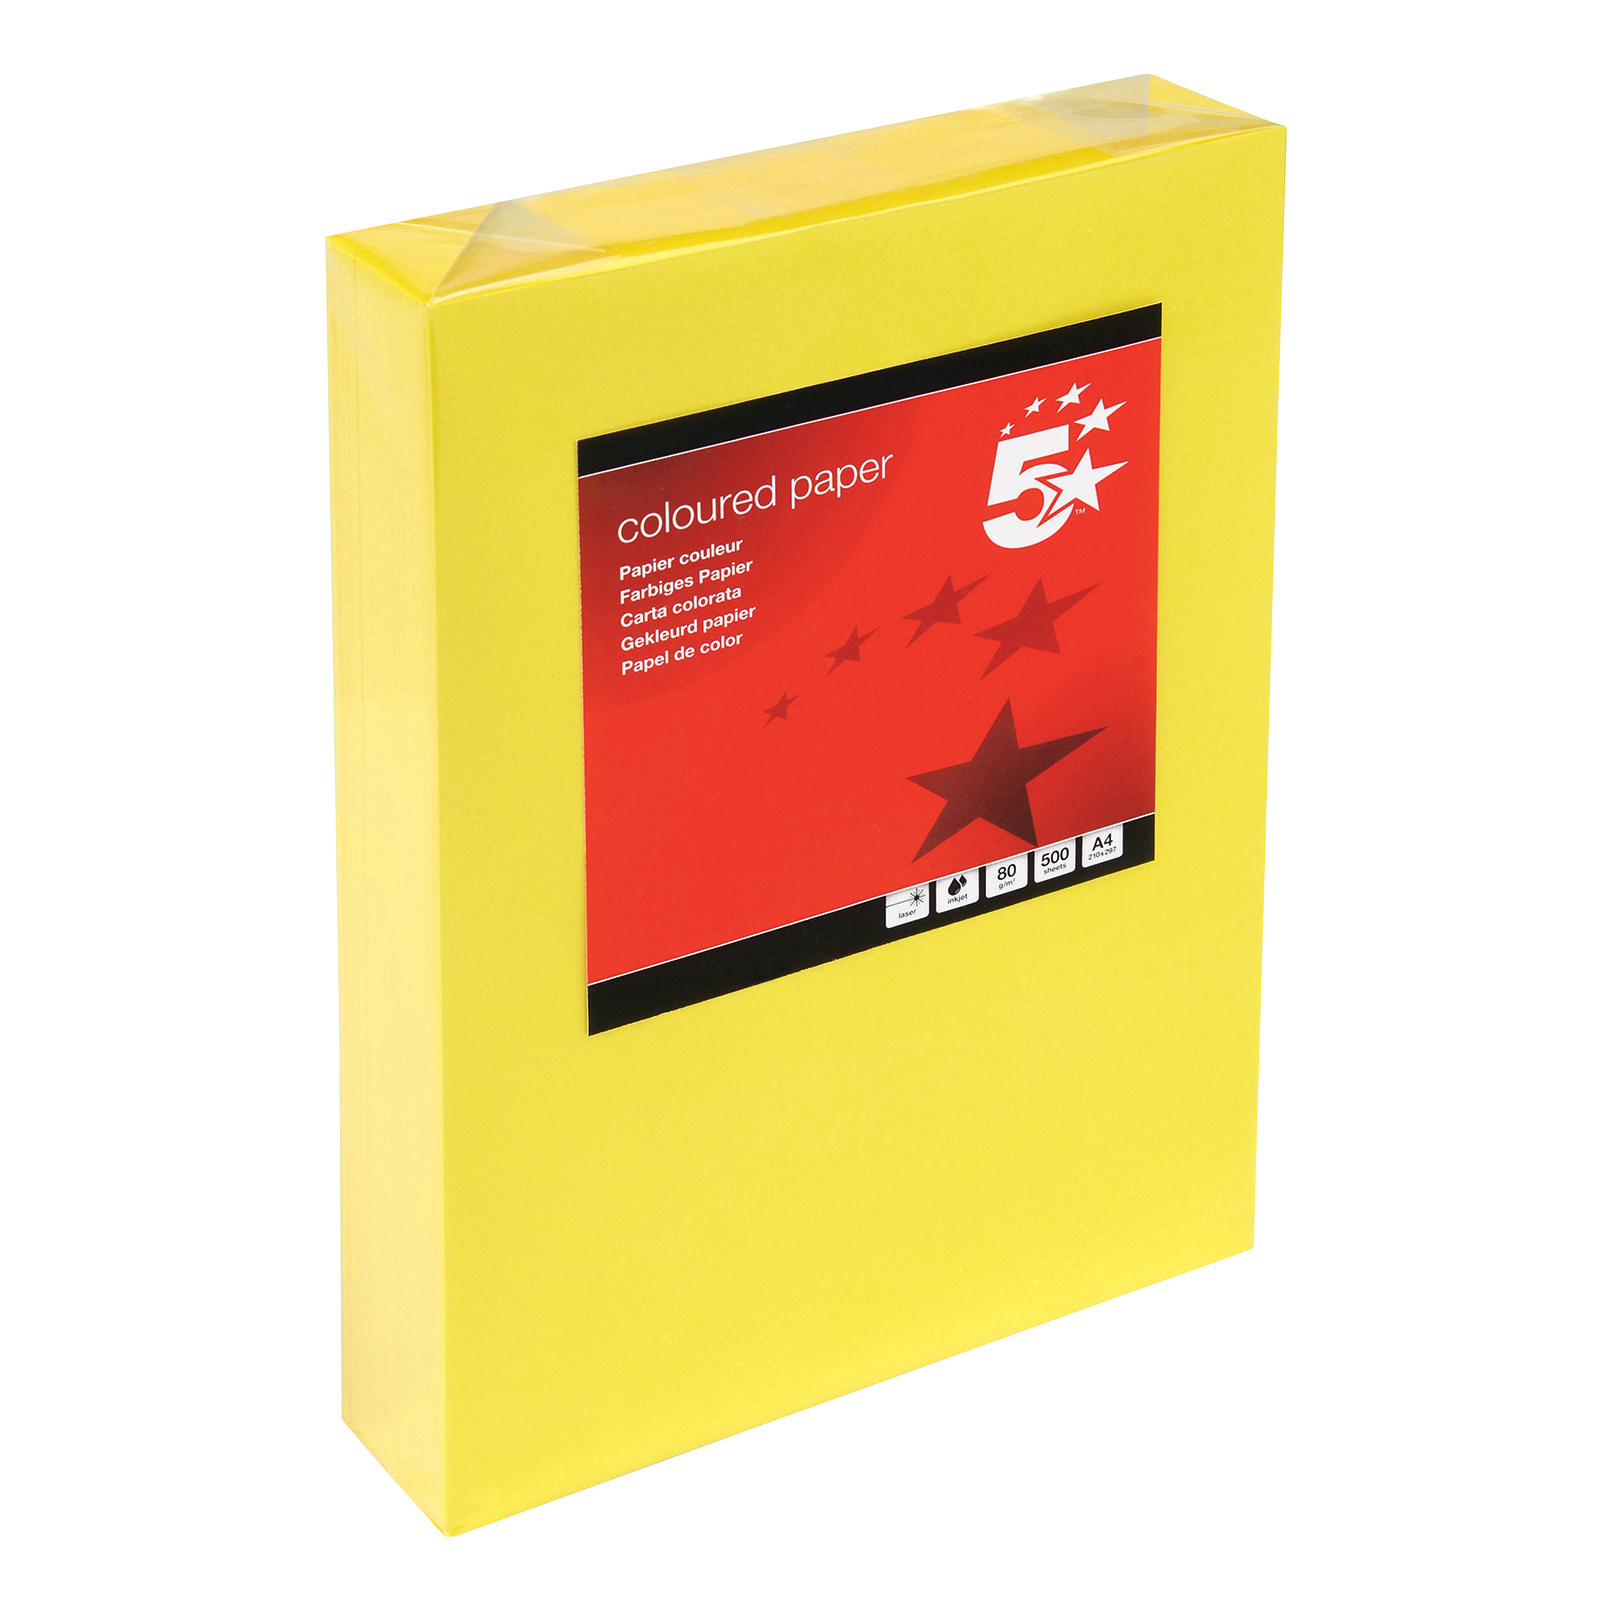 5 Star Office Coloured Copier Paper Multifunctional Ream-Wrapped 80gsm A4 Deep Yellow [500 Sheets]